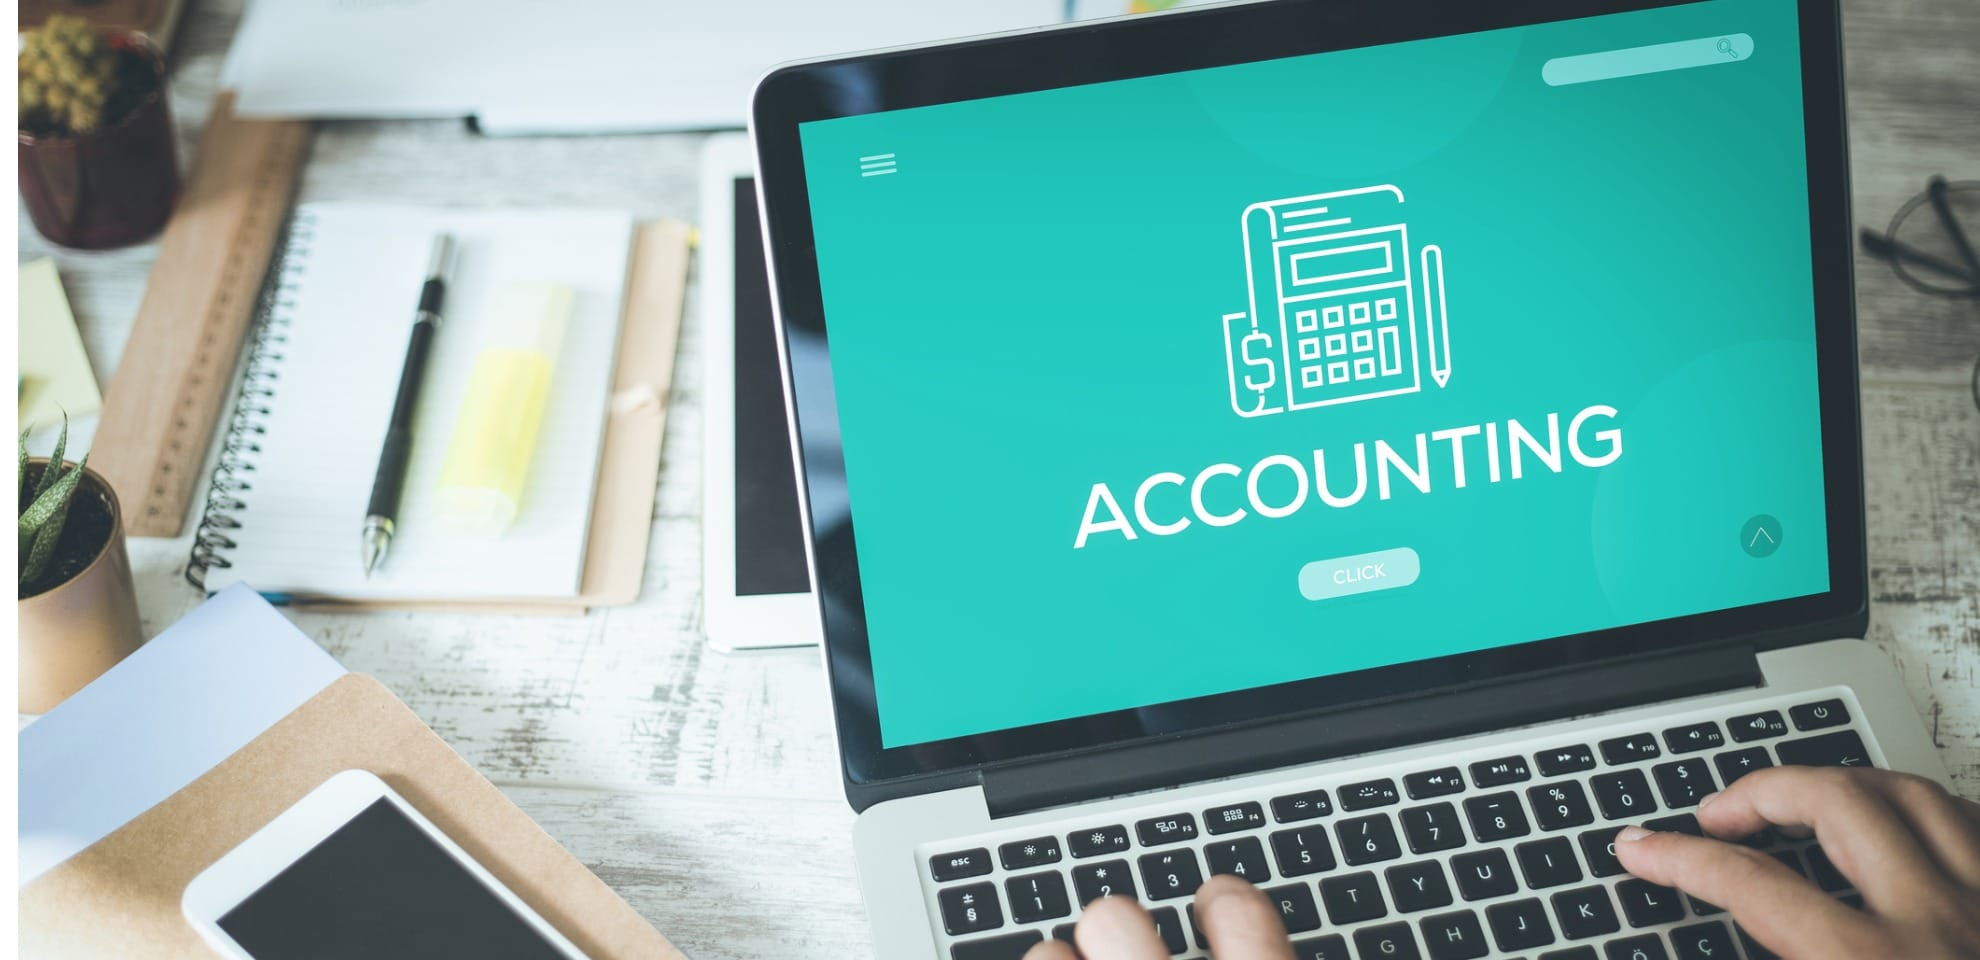 42 Basic Accounting Terms Amp Acronyms All Business Owners